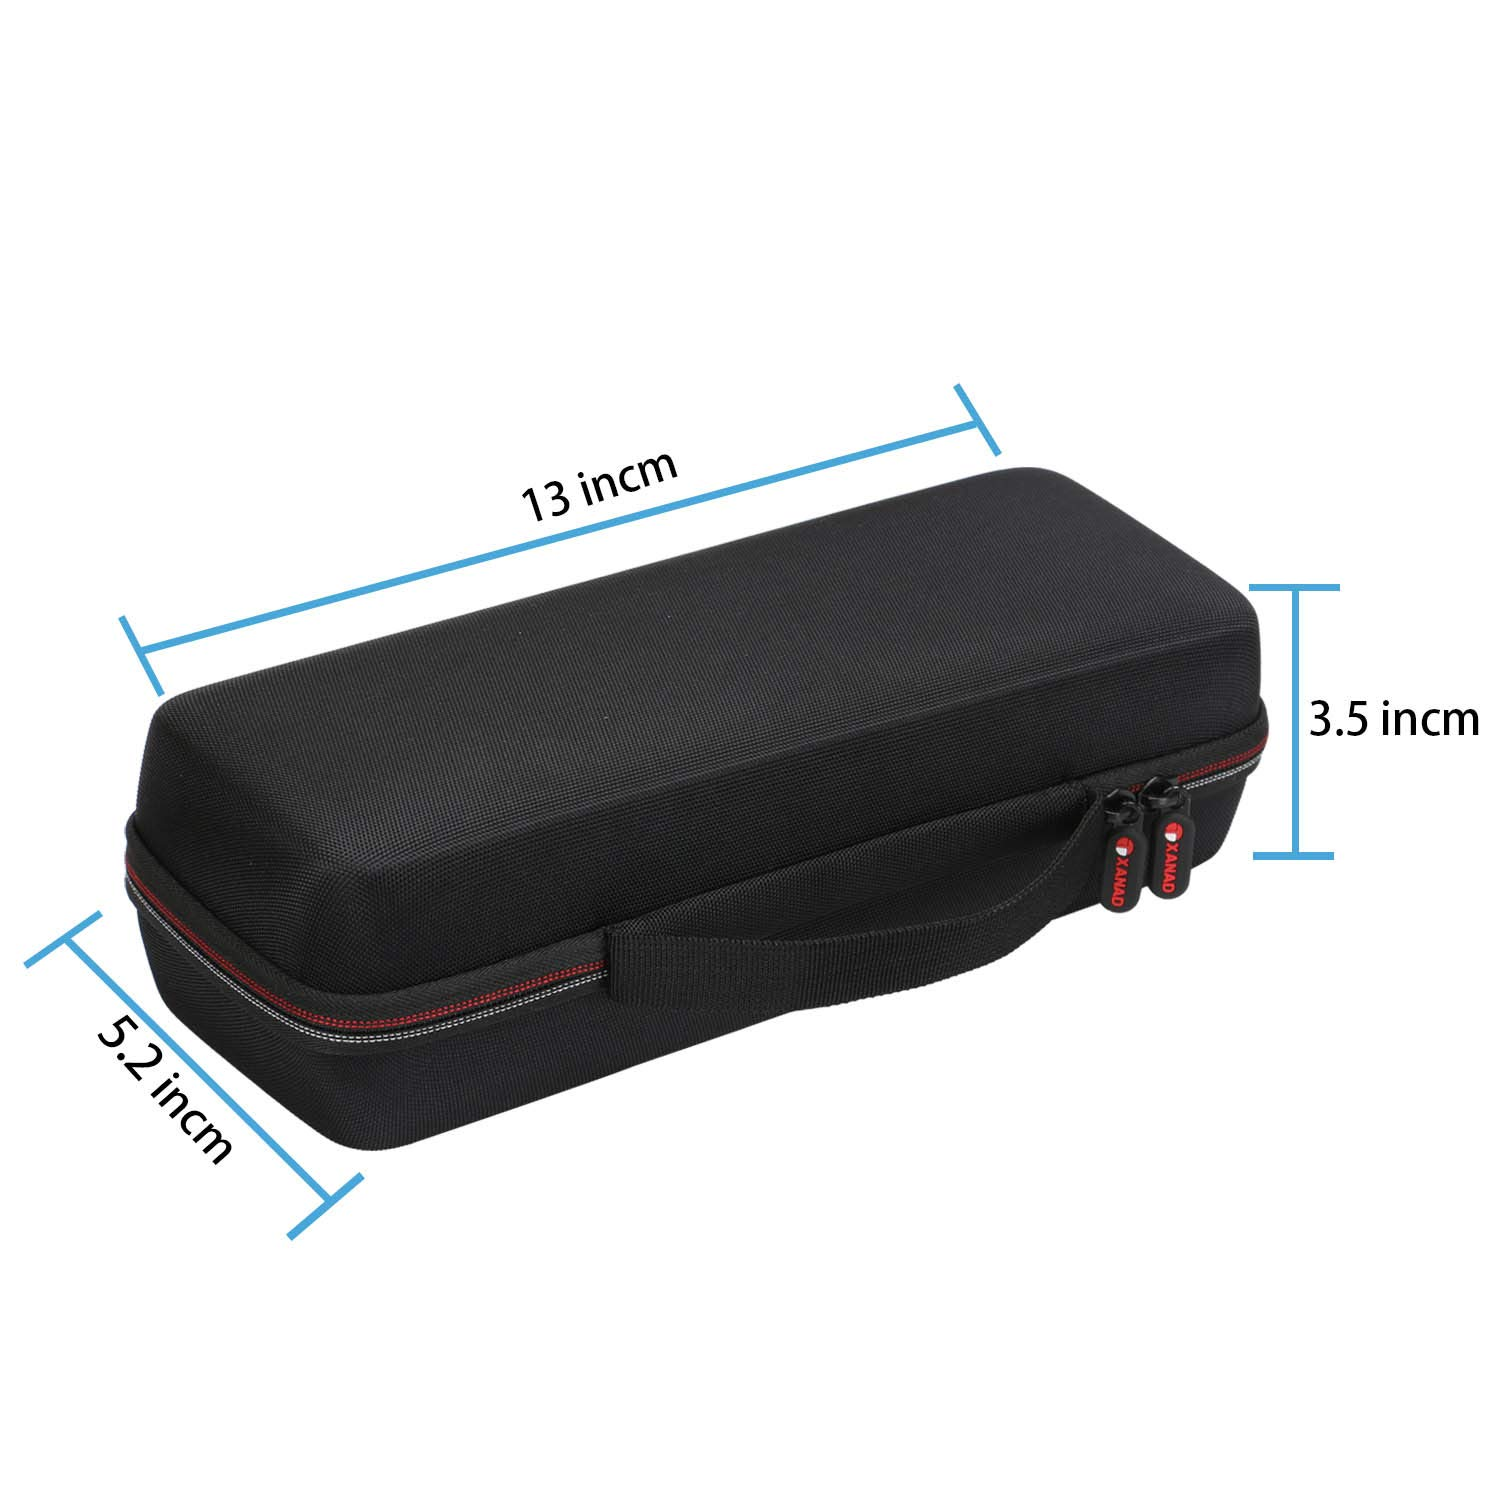 XANAD Case Compatible with NOCO Genius G7200 12V 24V 7.2A UltraSafe Smart Battery Charger